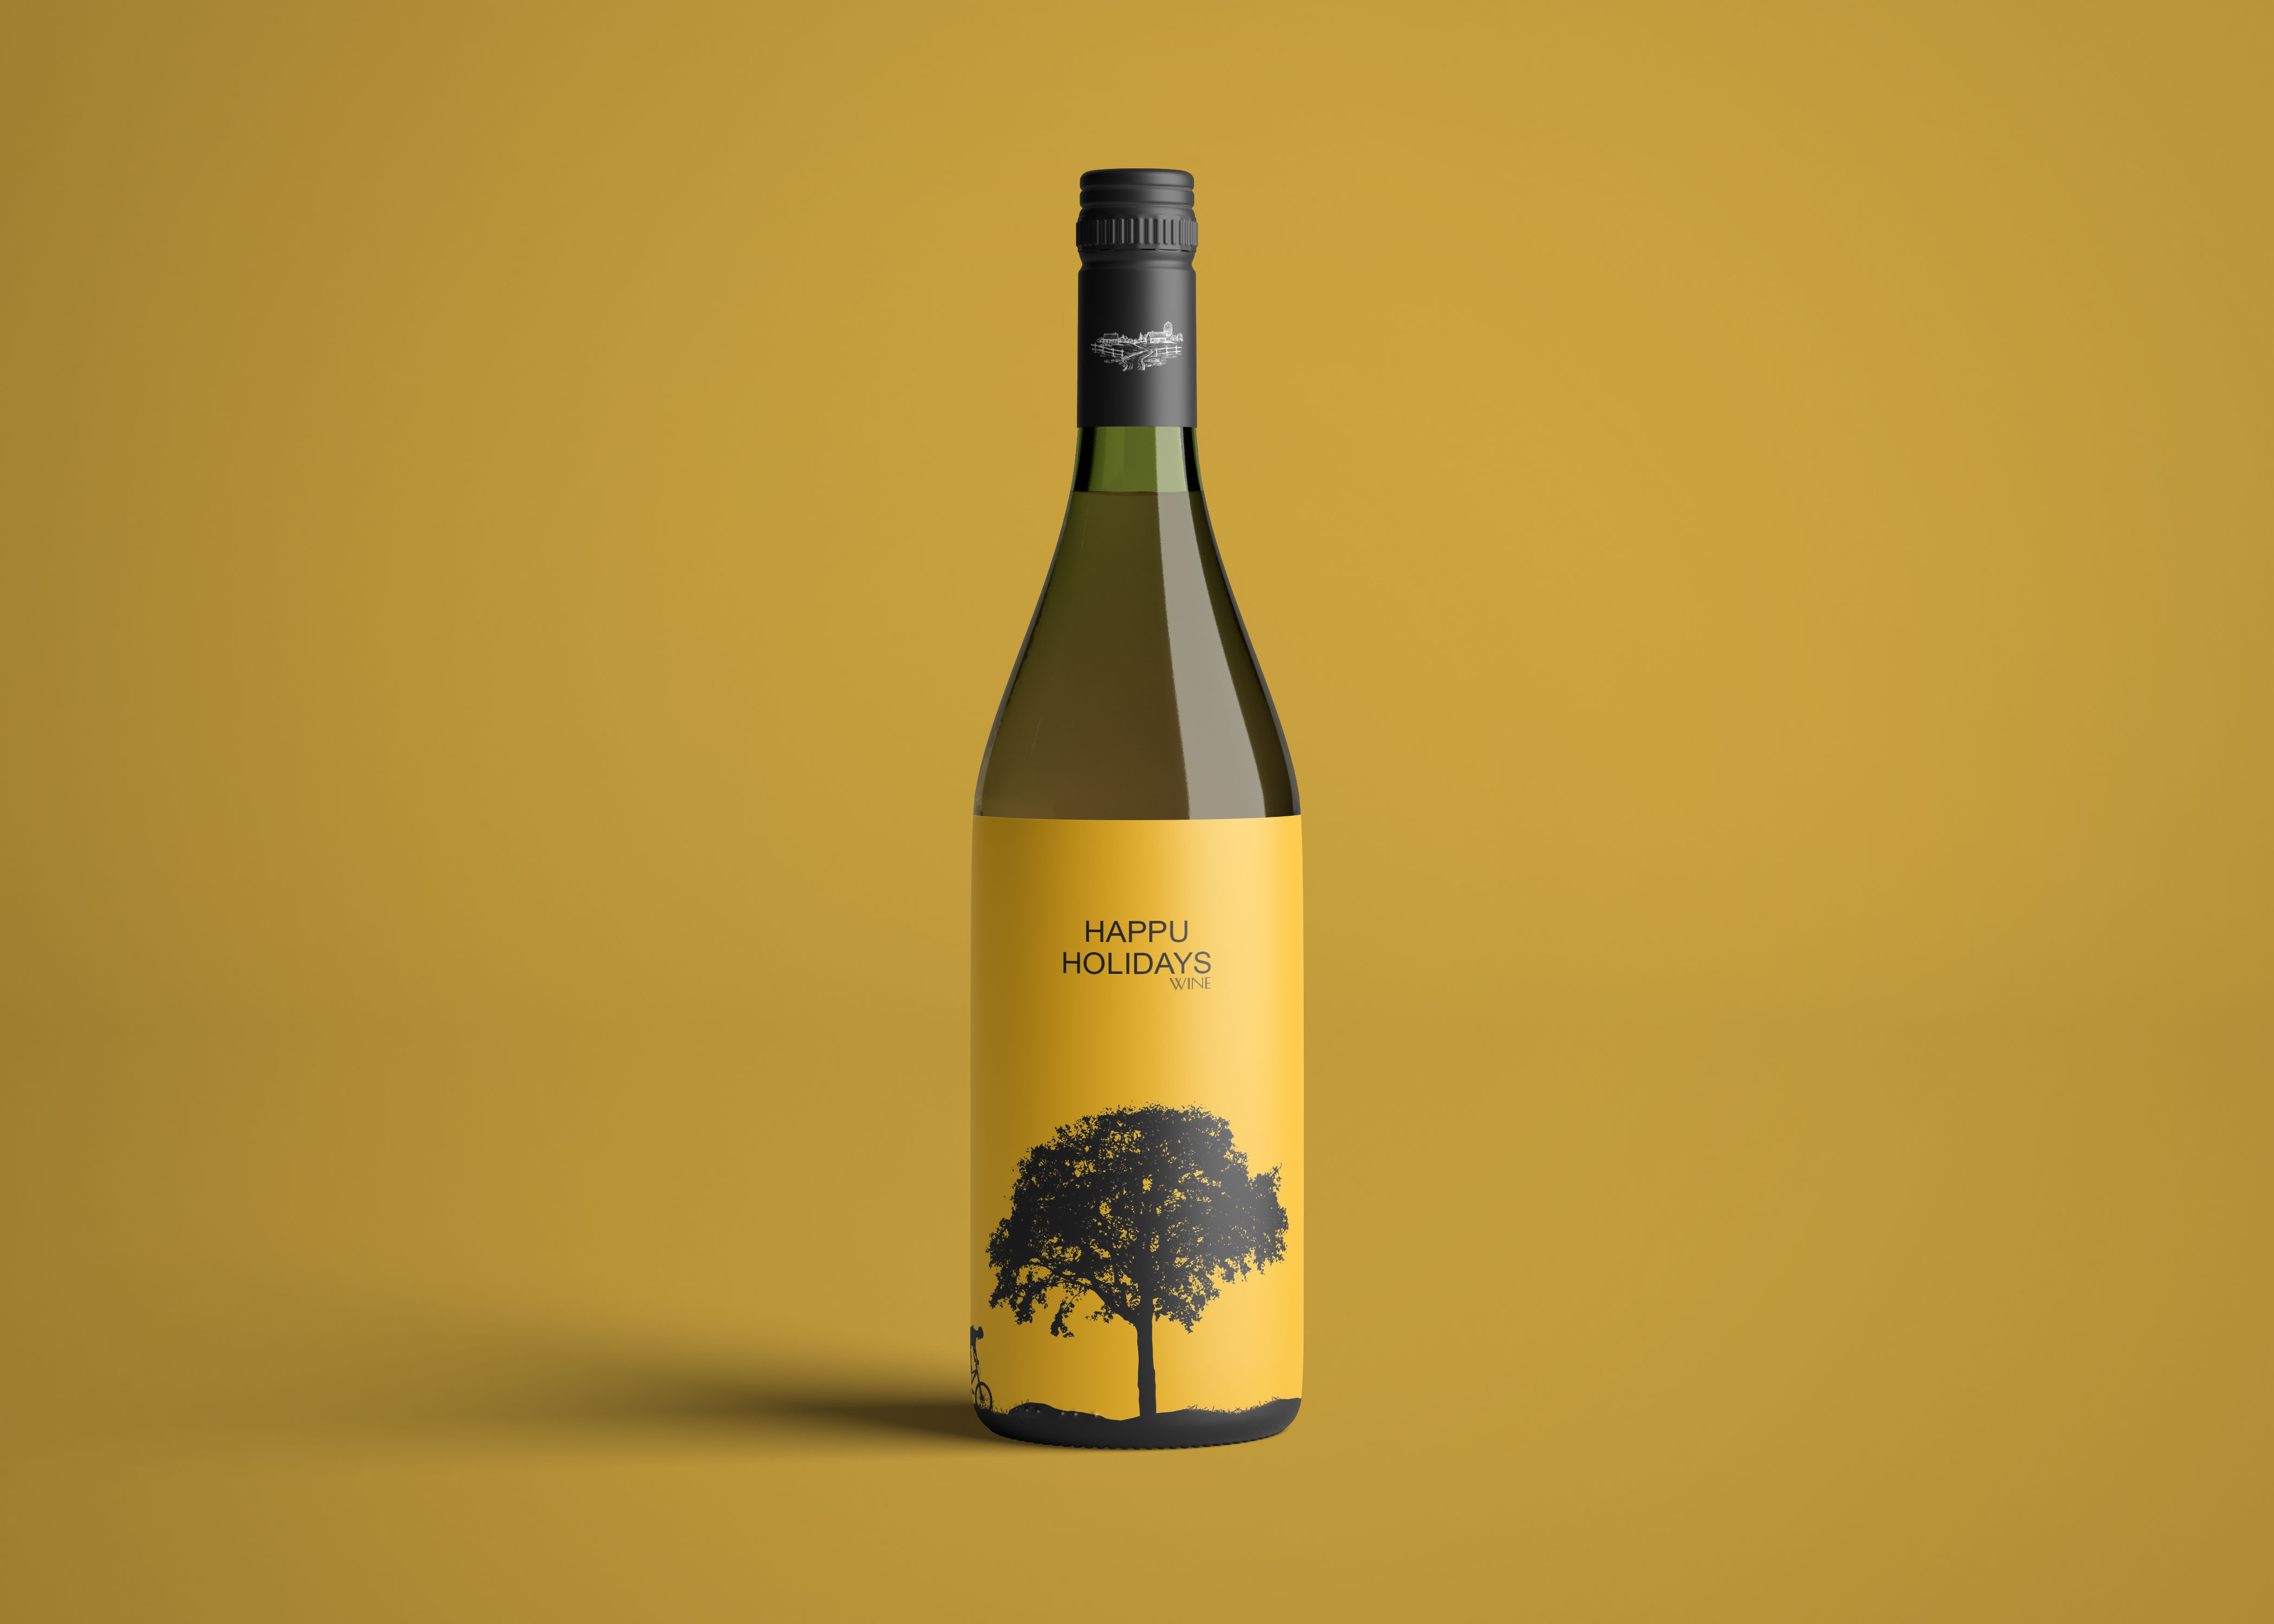 Premium Wine Bottle Label Mockup